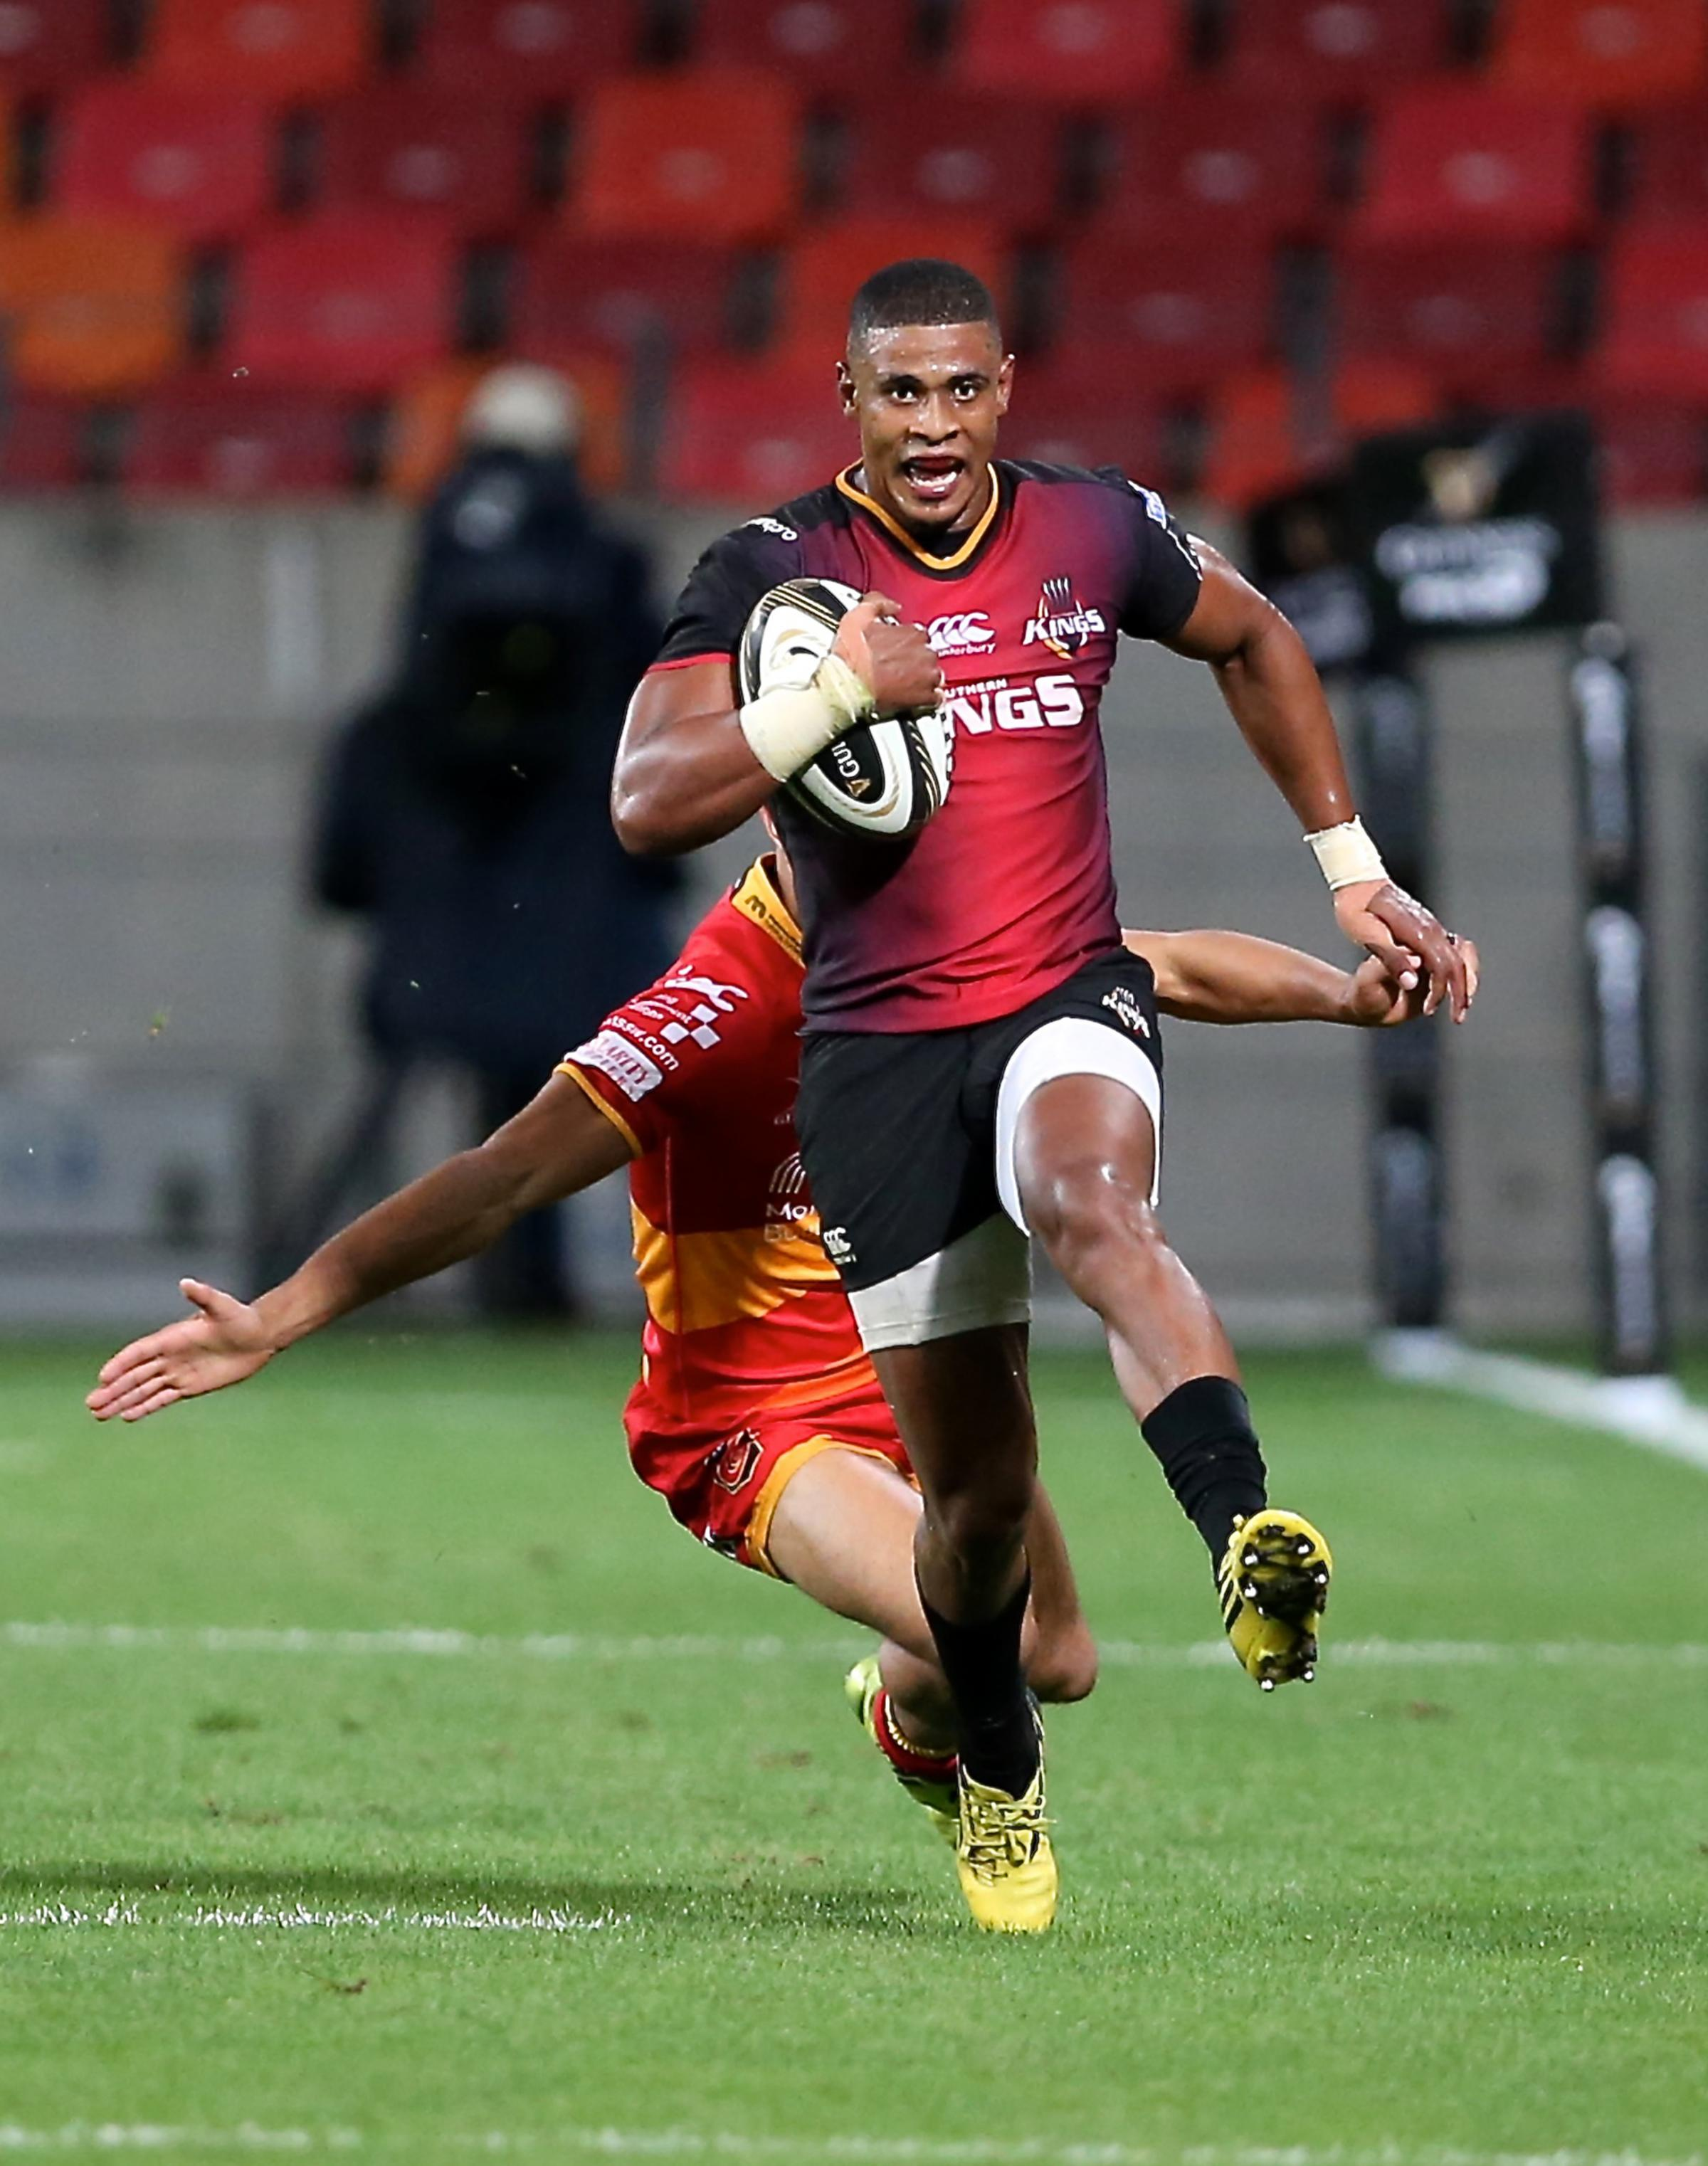 Southern Kings 45 Dragons 13: Humiliation in Port Elizabeth